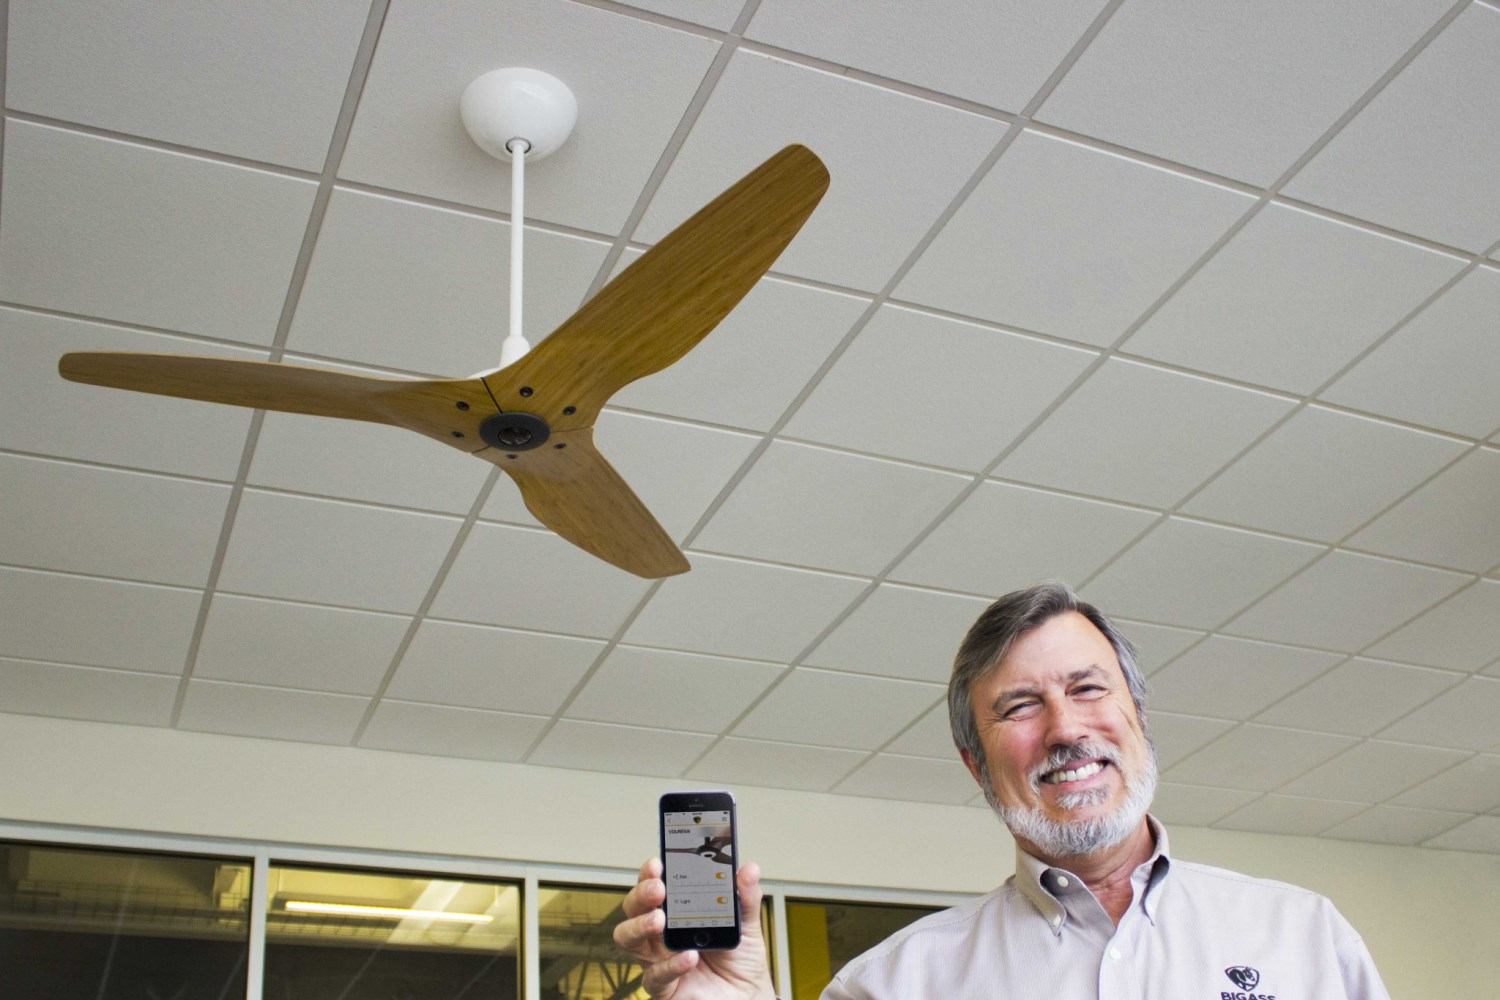 The Haiku fan is the world's first smart ceiling fan, designed with an on-board computer and array of sensors